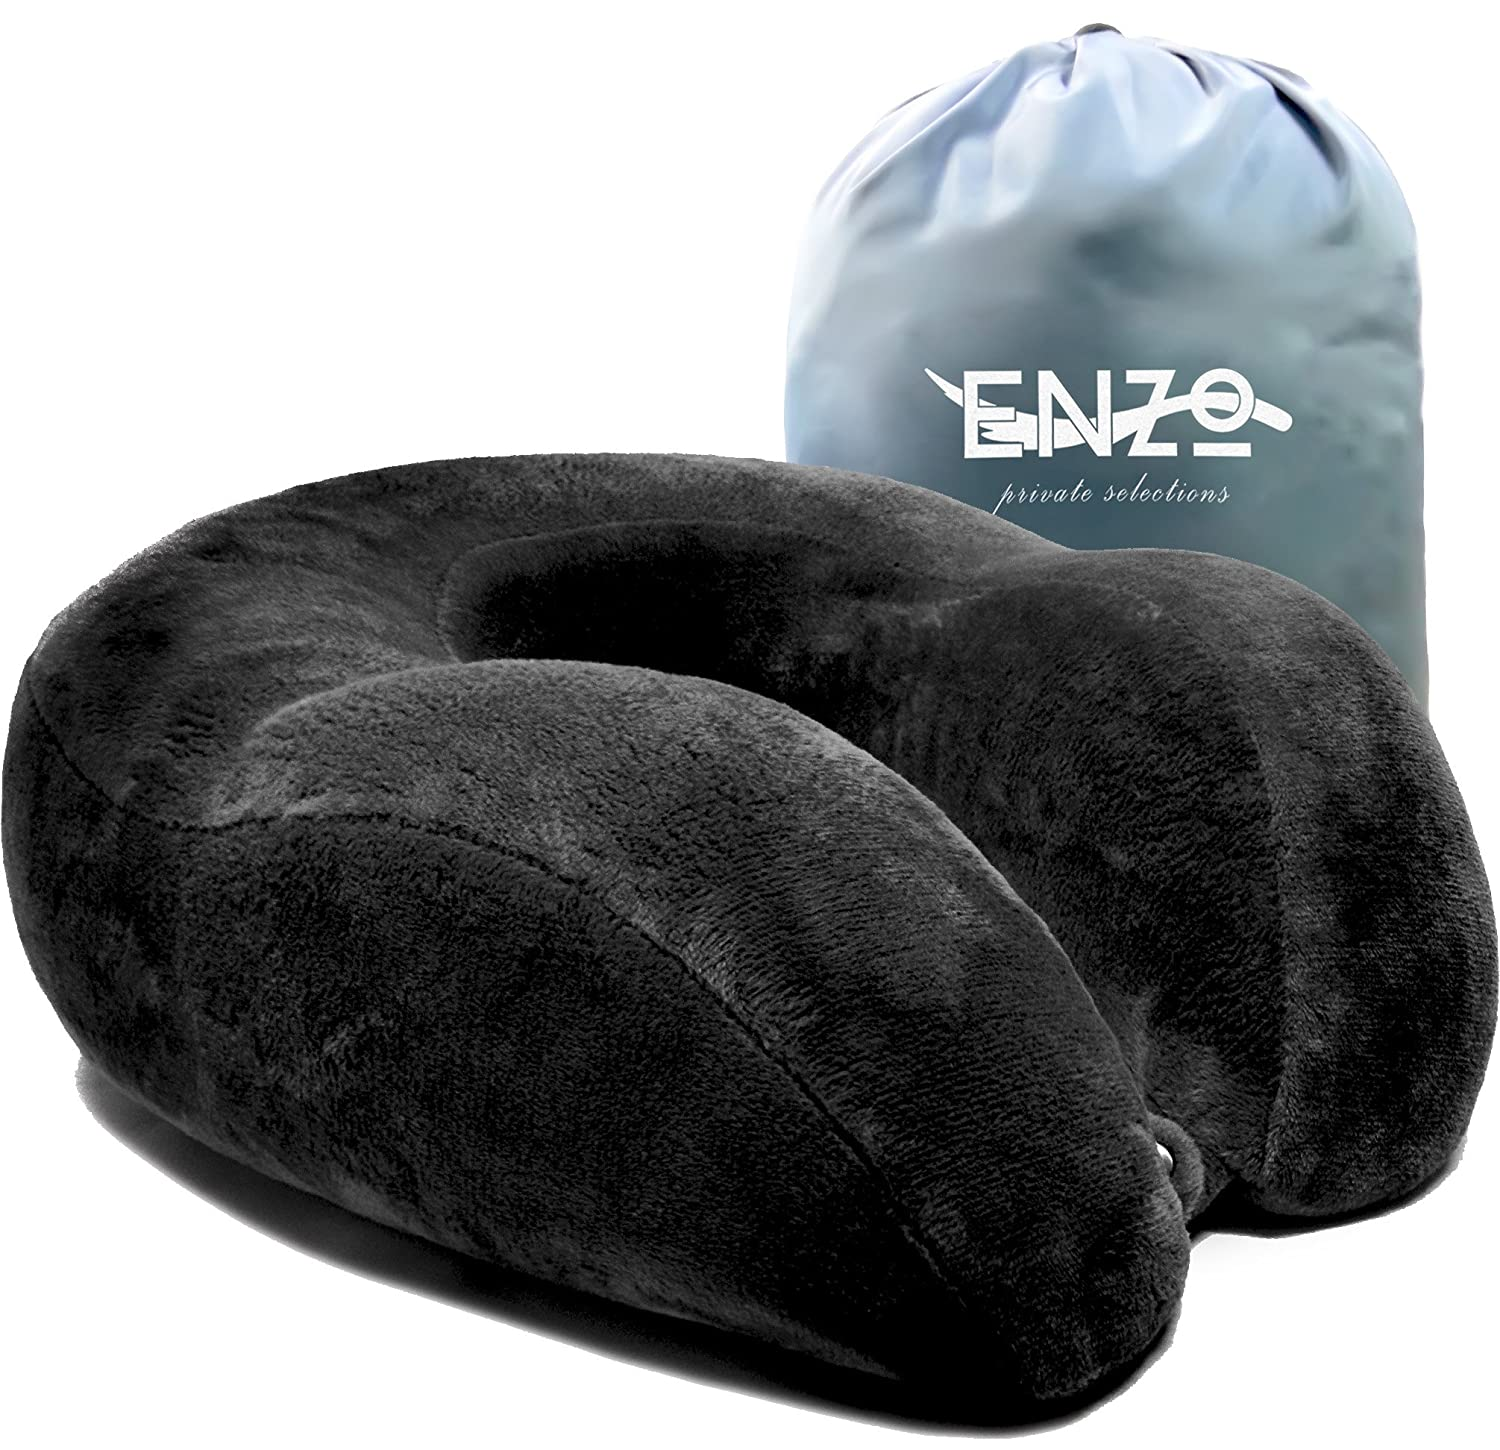 Bed chair pillow amazon - Enzo S Private Selection Cooling Gel Memory Foam Travel Neck Pillow Grey